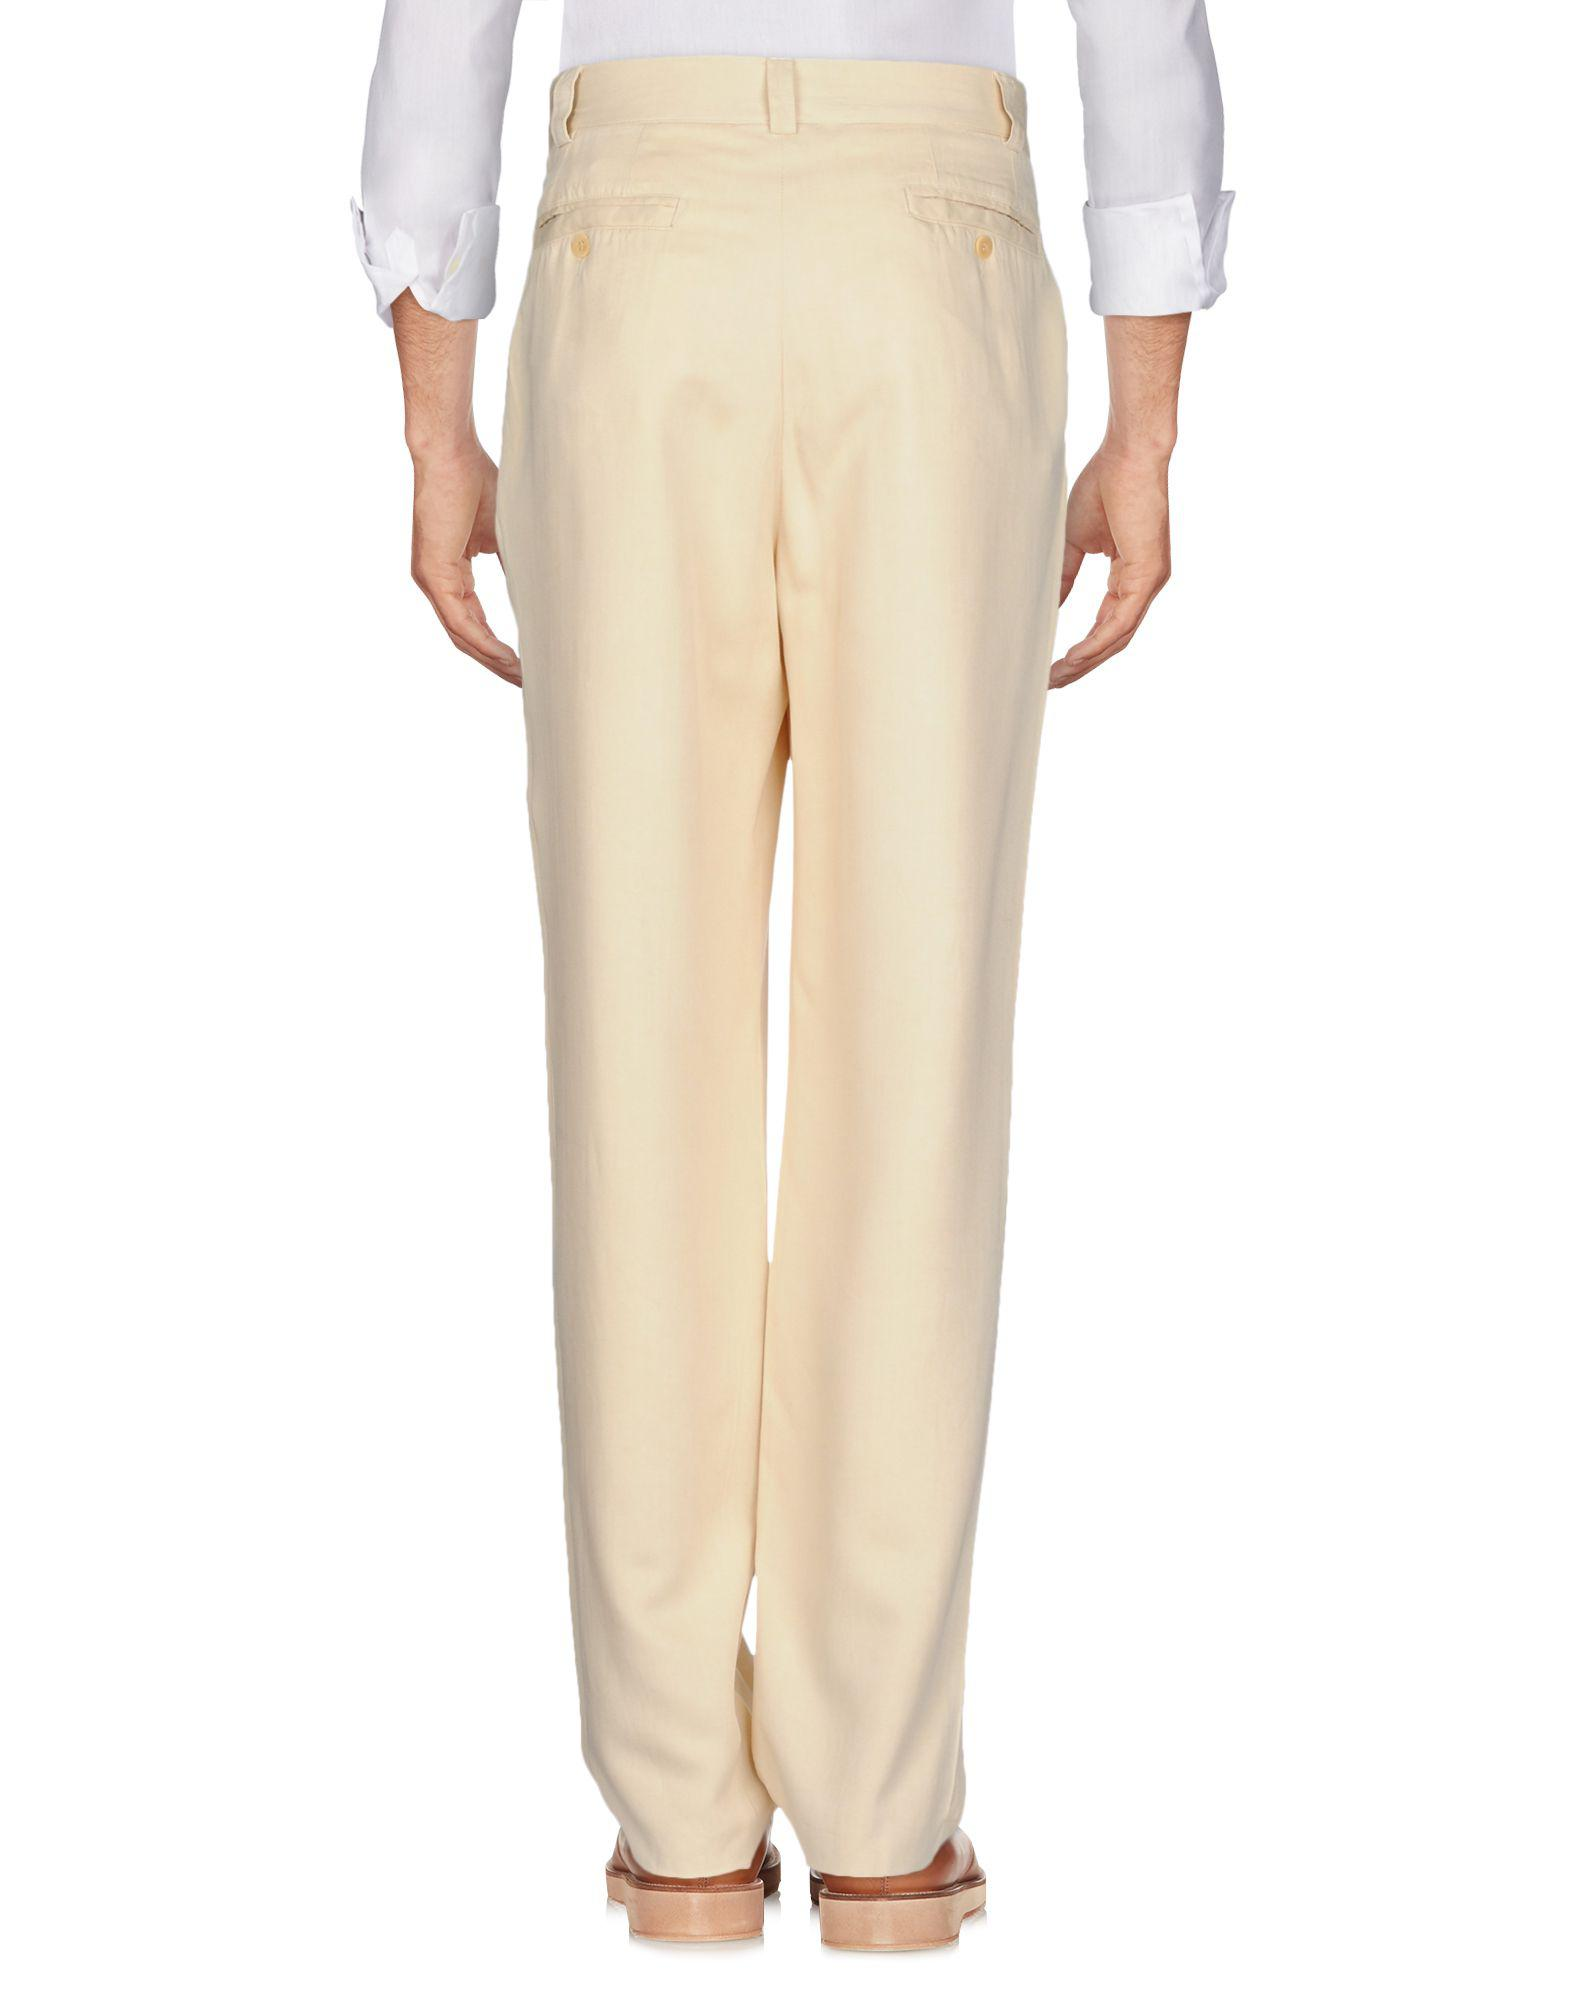 Versus Synthetic Casual Pants in Ivory (White) for Men